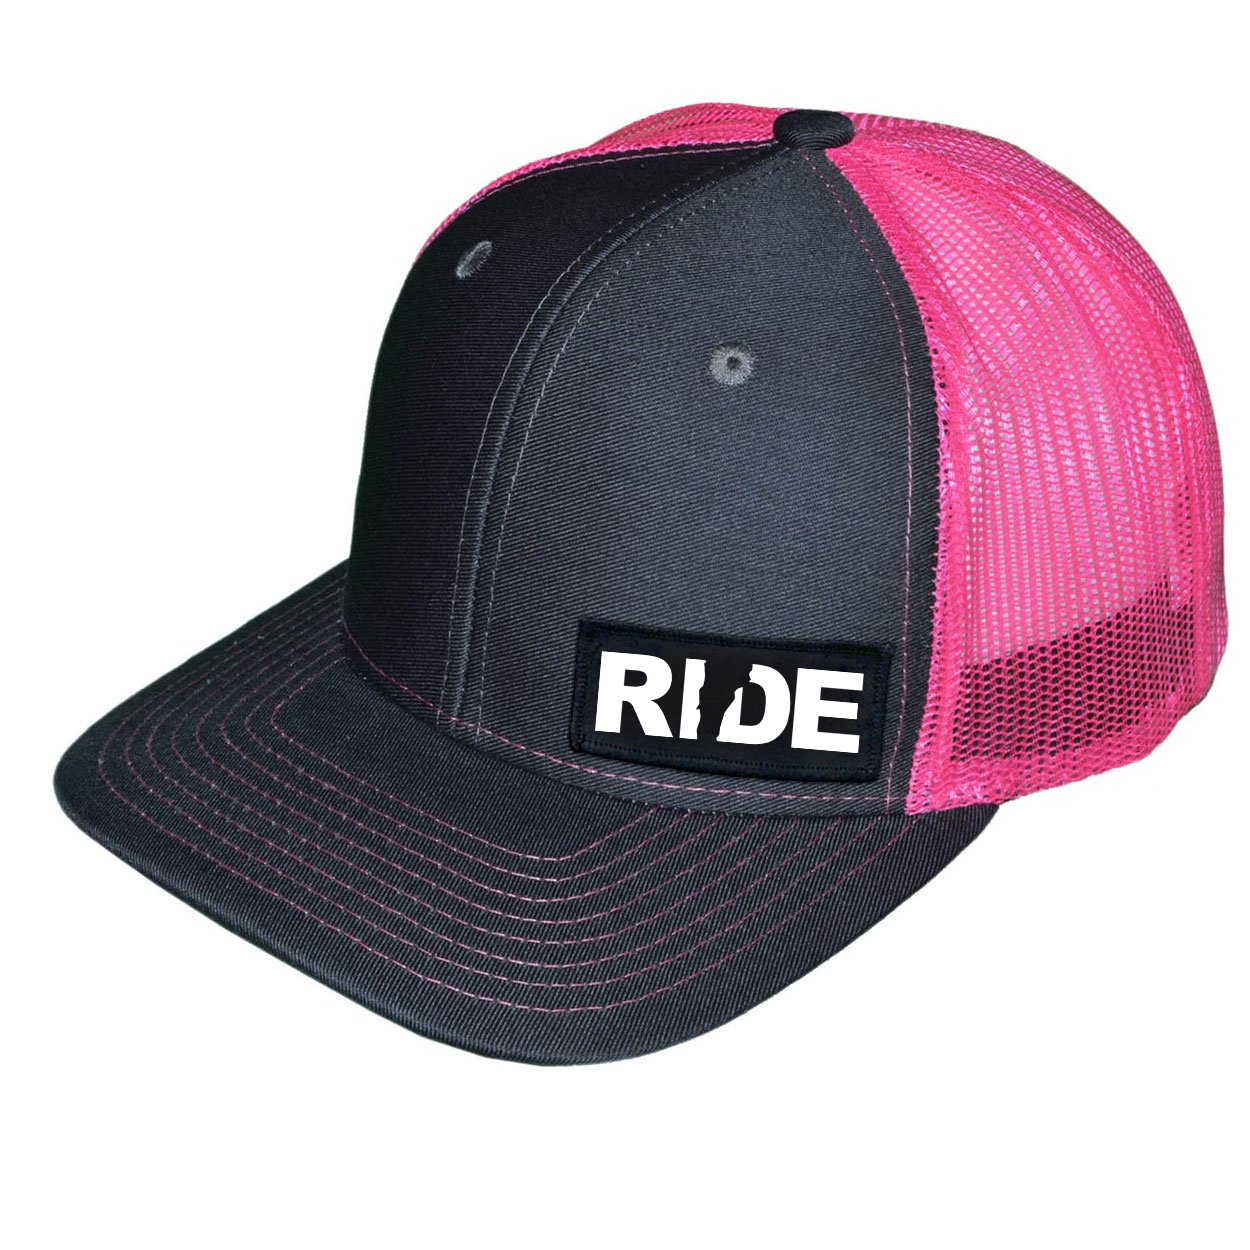 Ride Vermont Night Out Woven Patch Snapback Trucker Hat Dark Gray/Neon Pink (White Logo)